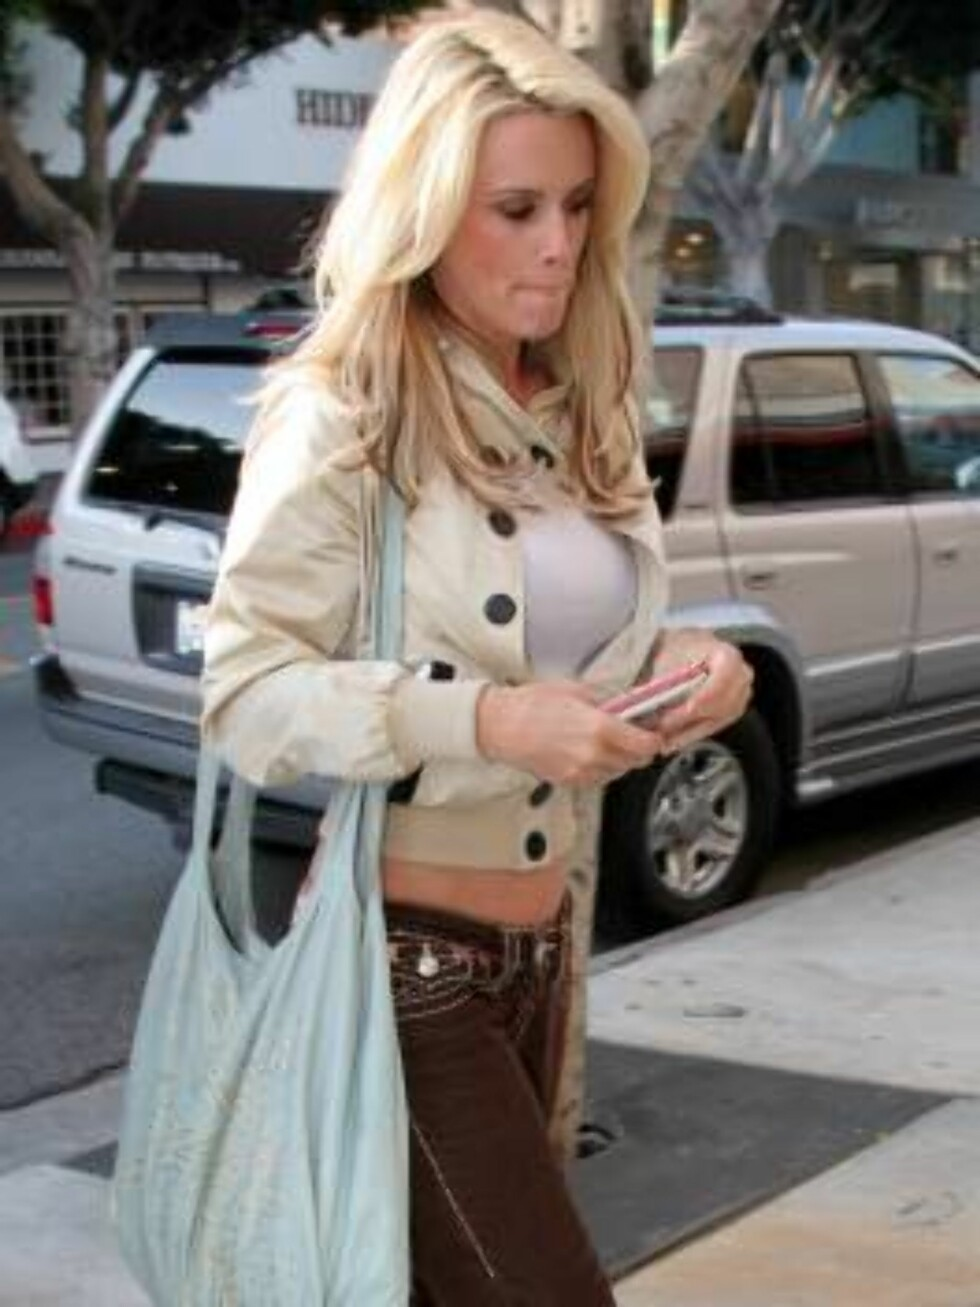 Jenny Mc Carthy wearing True Religion jeans outside of Newsroom cafe in West Hollywood. November 2, 2005 X17agency exclusive / ALL OVER PRESS Foto: All Over Press